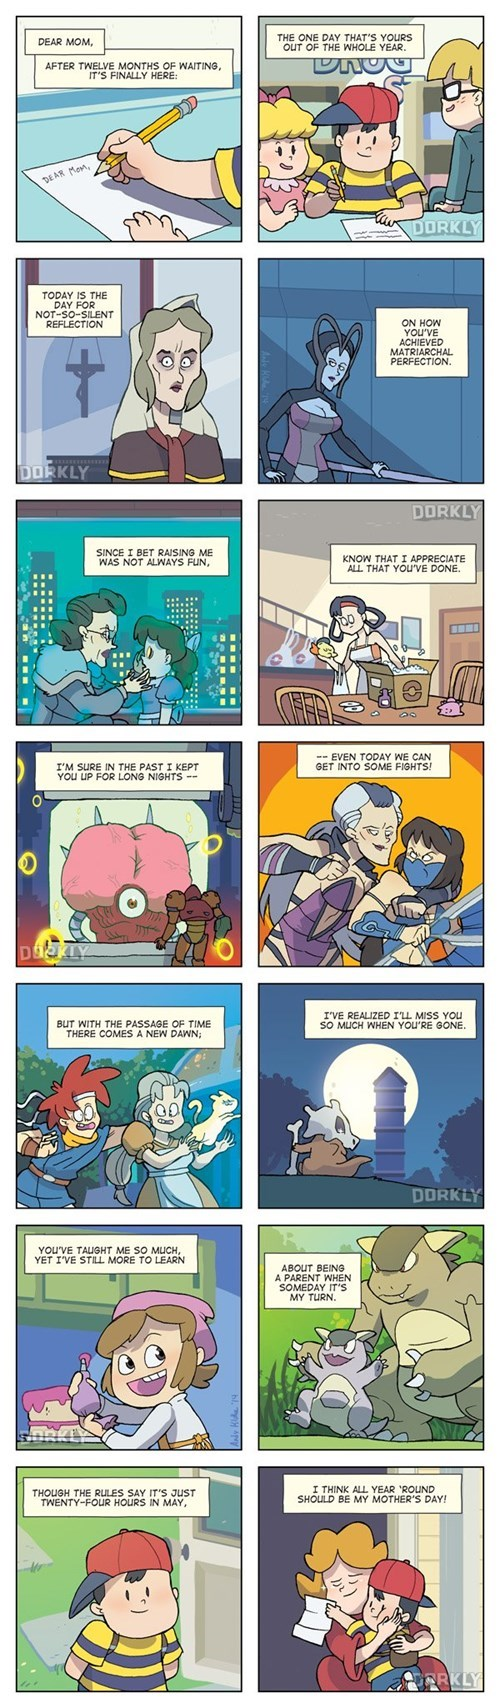 dorkly feels mothers day video games web comics - 8180125952